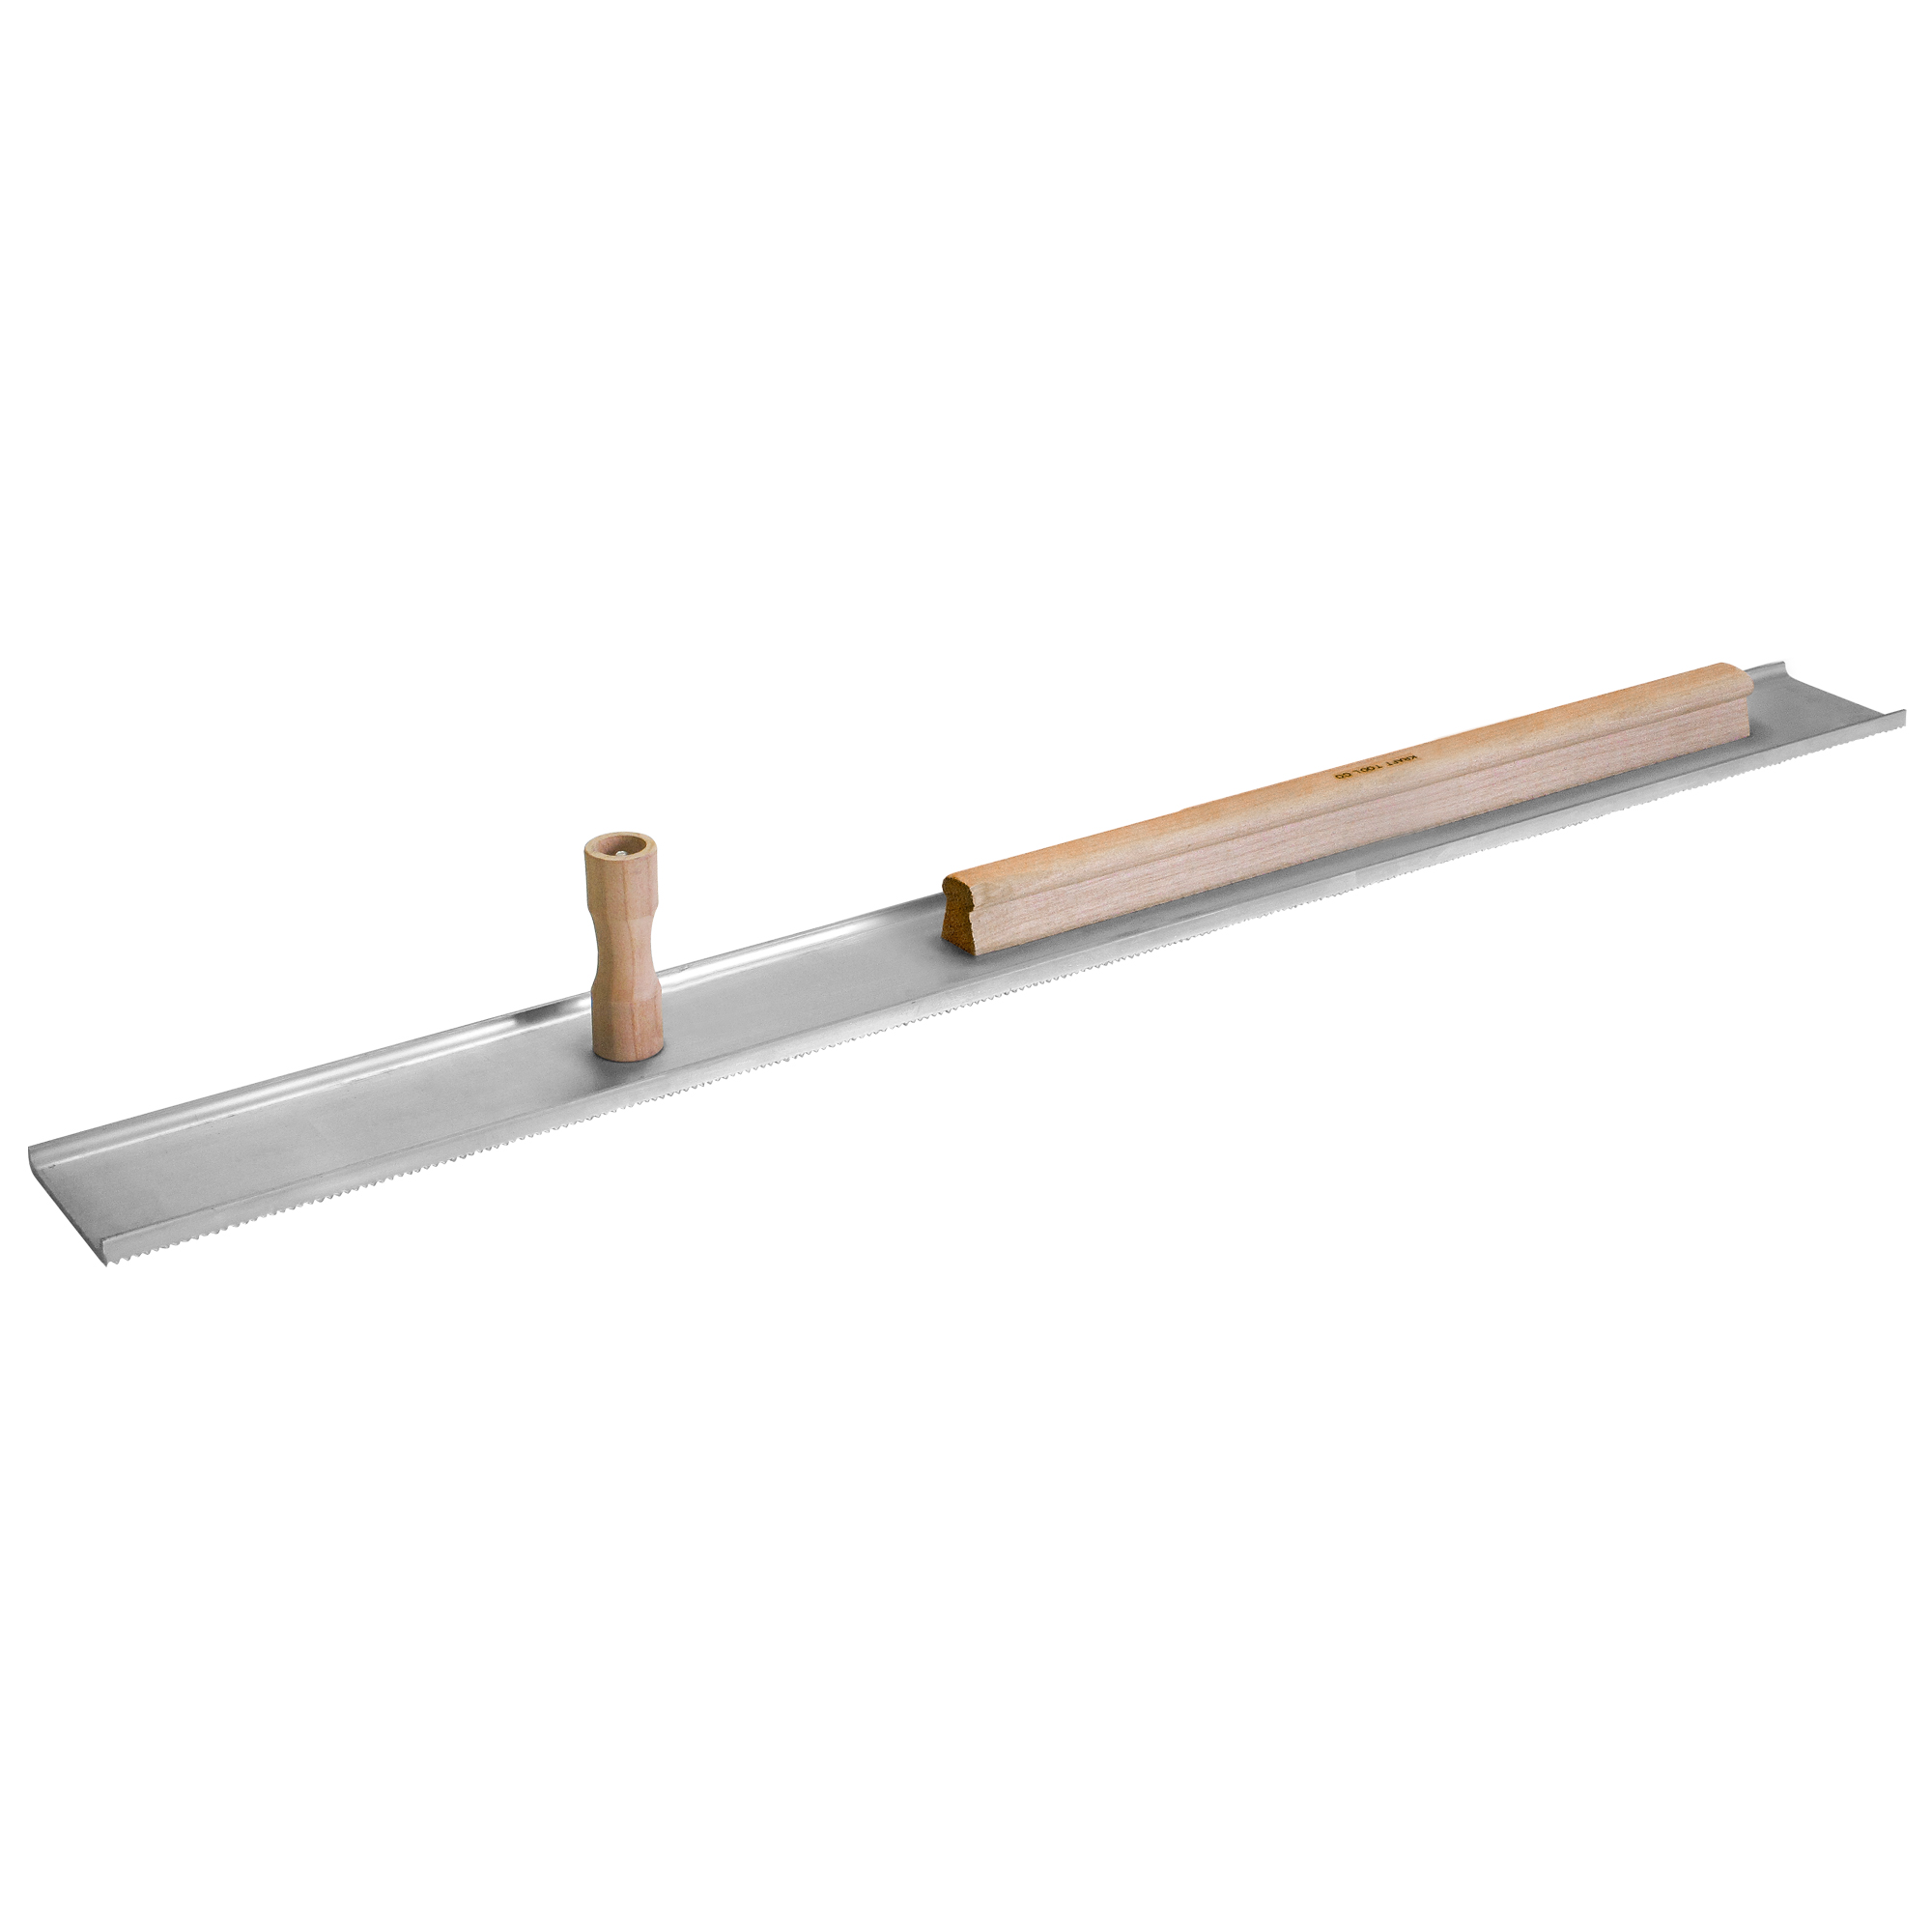 42inch Single Serrated Magnesium Darby With 1-knob And 24inch Rib Handle - Pl404-24 - Measuring & Sensors Tools Drywall Plastering Darbies PL404-24